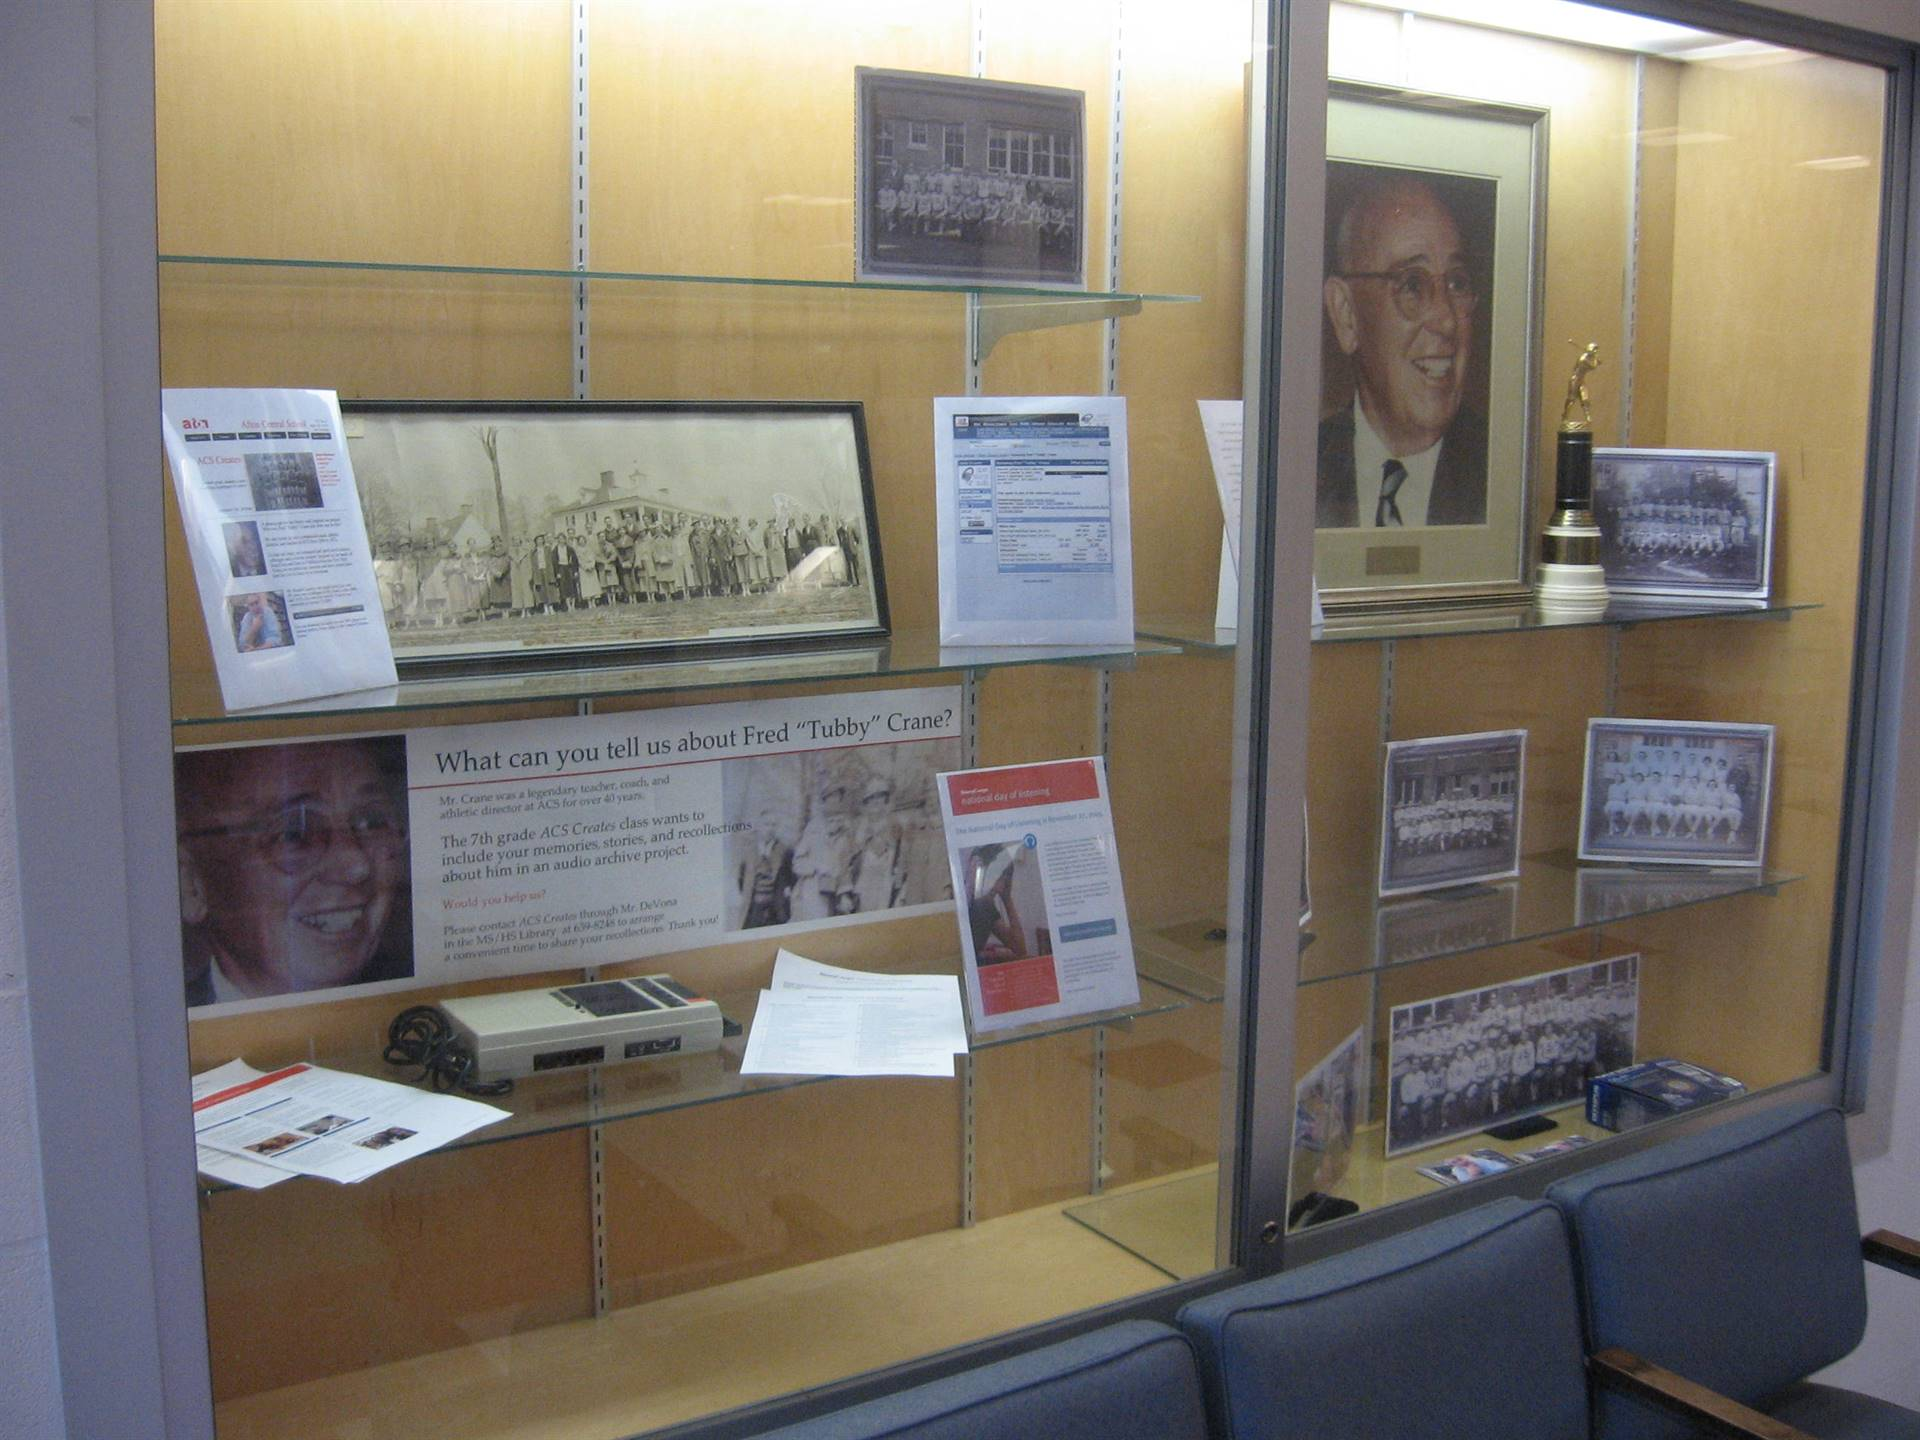 Lobby display: MS library research project about Tubby Crane.